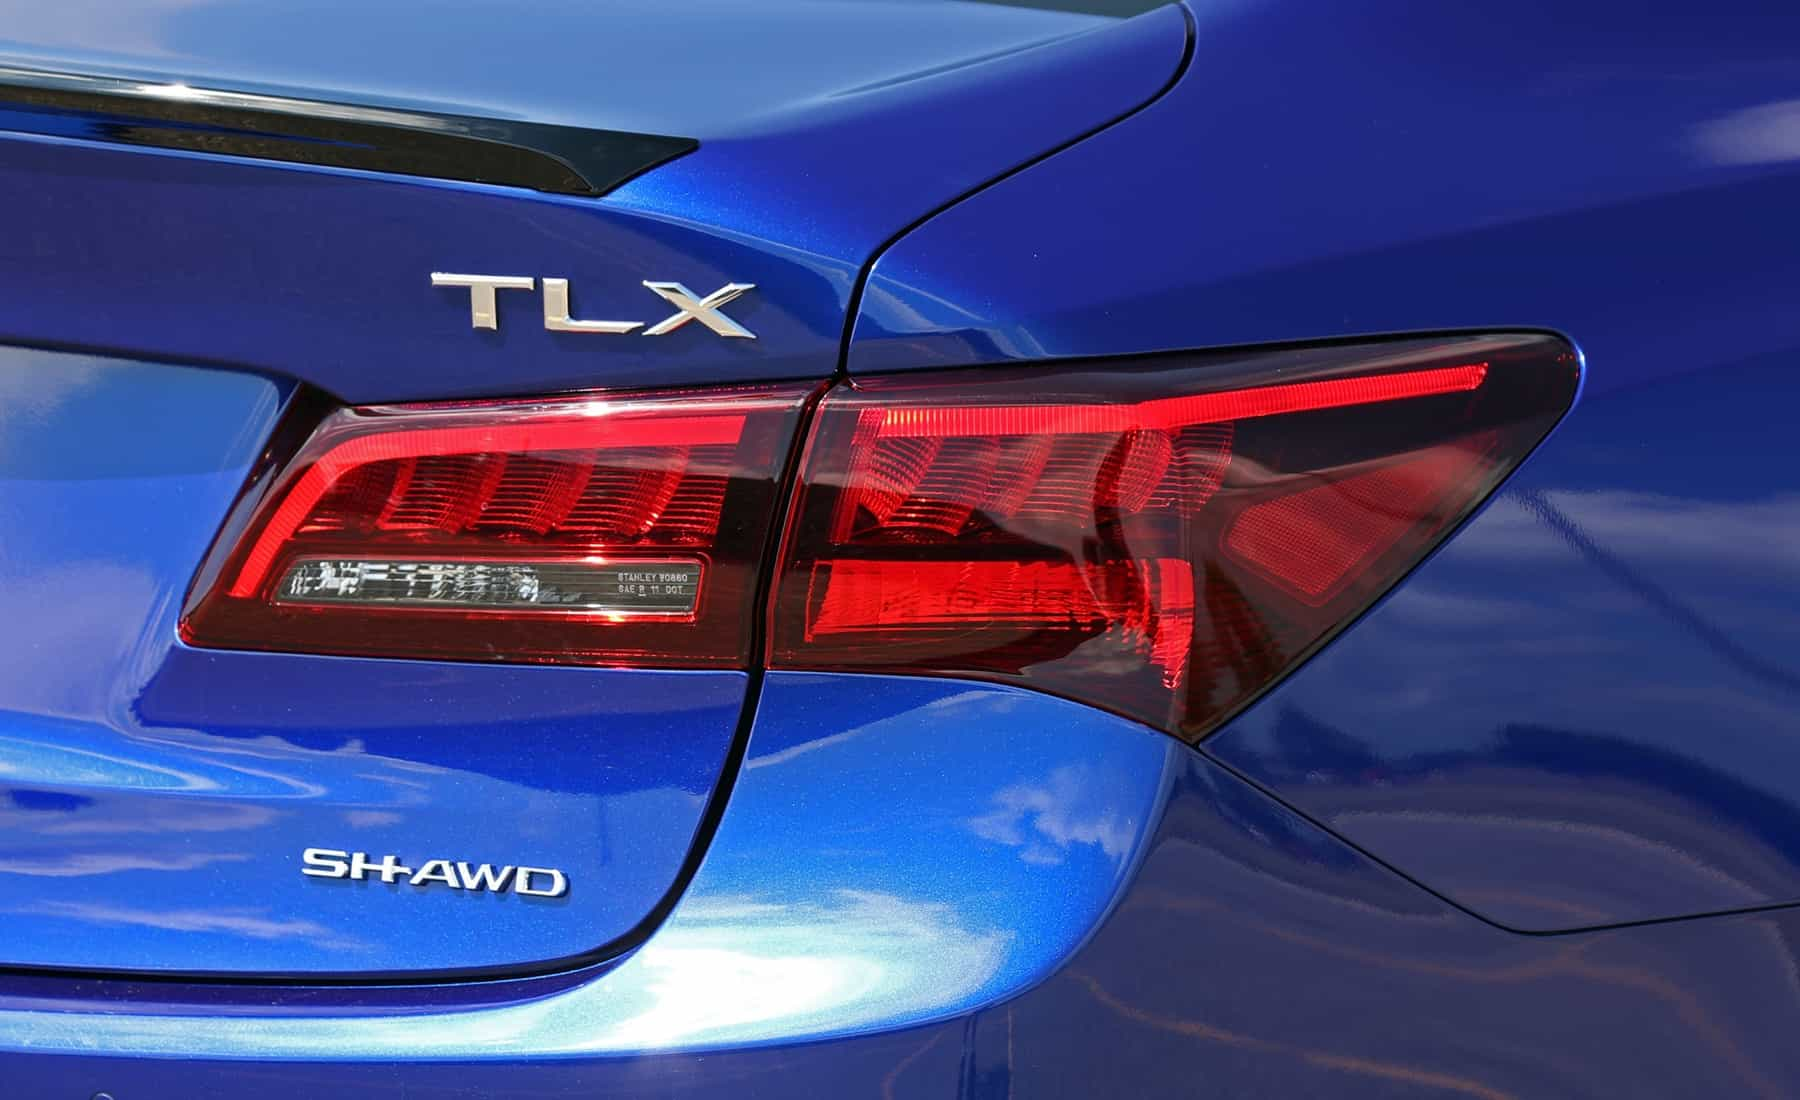 2018 Acura TLX Exterior View Taillight And Emblem (View 36 of 46)